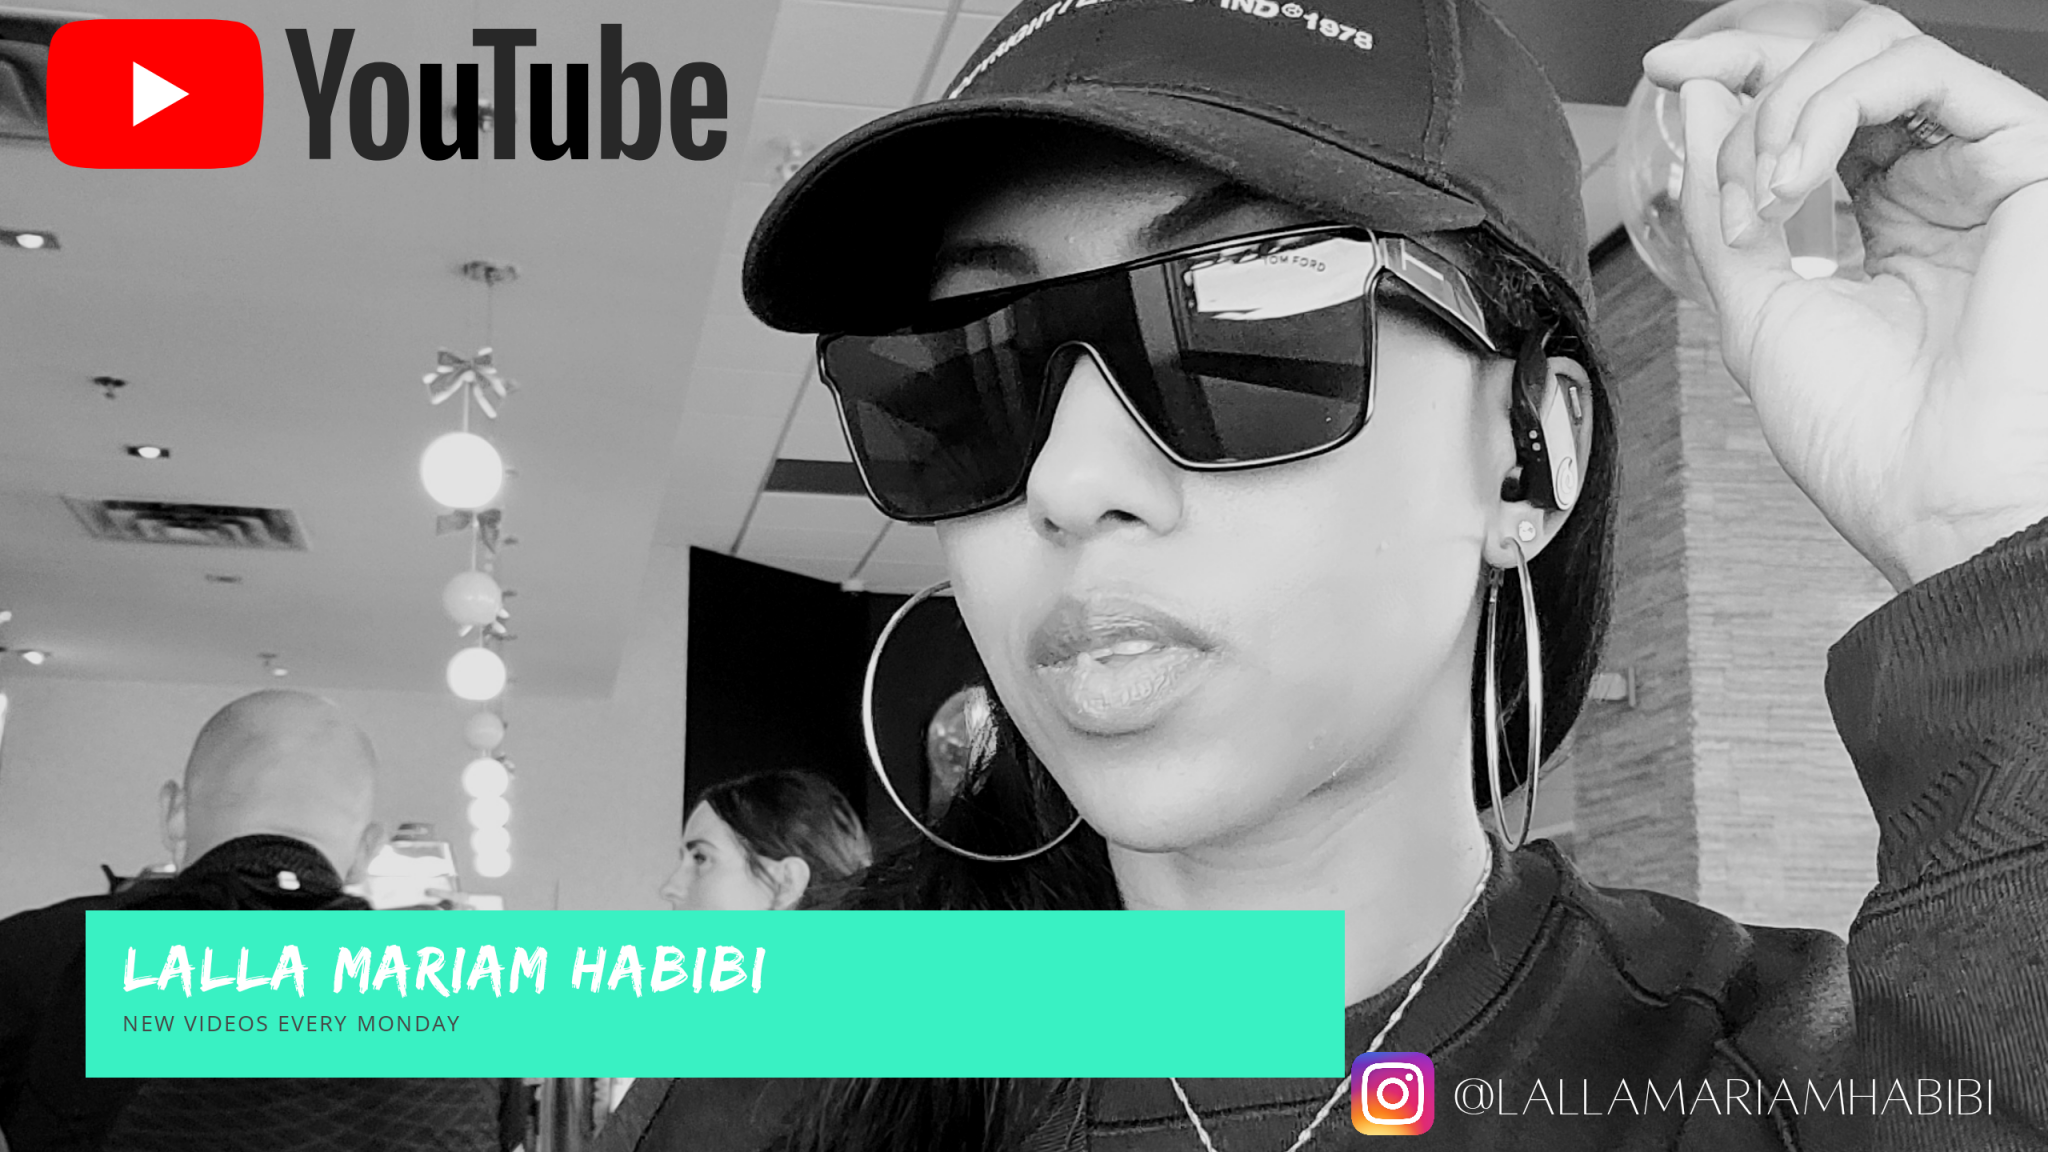 lalla mariam habibi youtube channel side chicks vs wives in islam